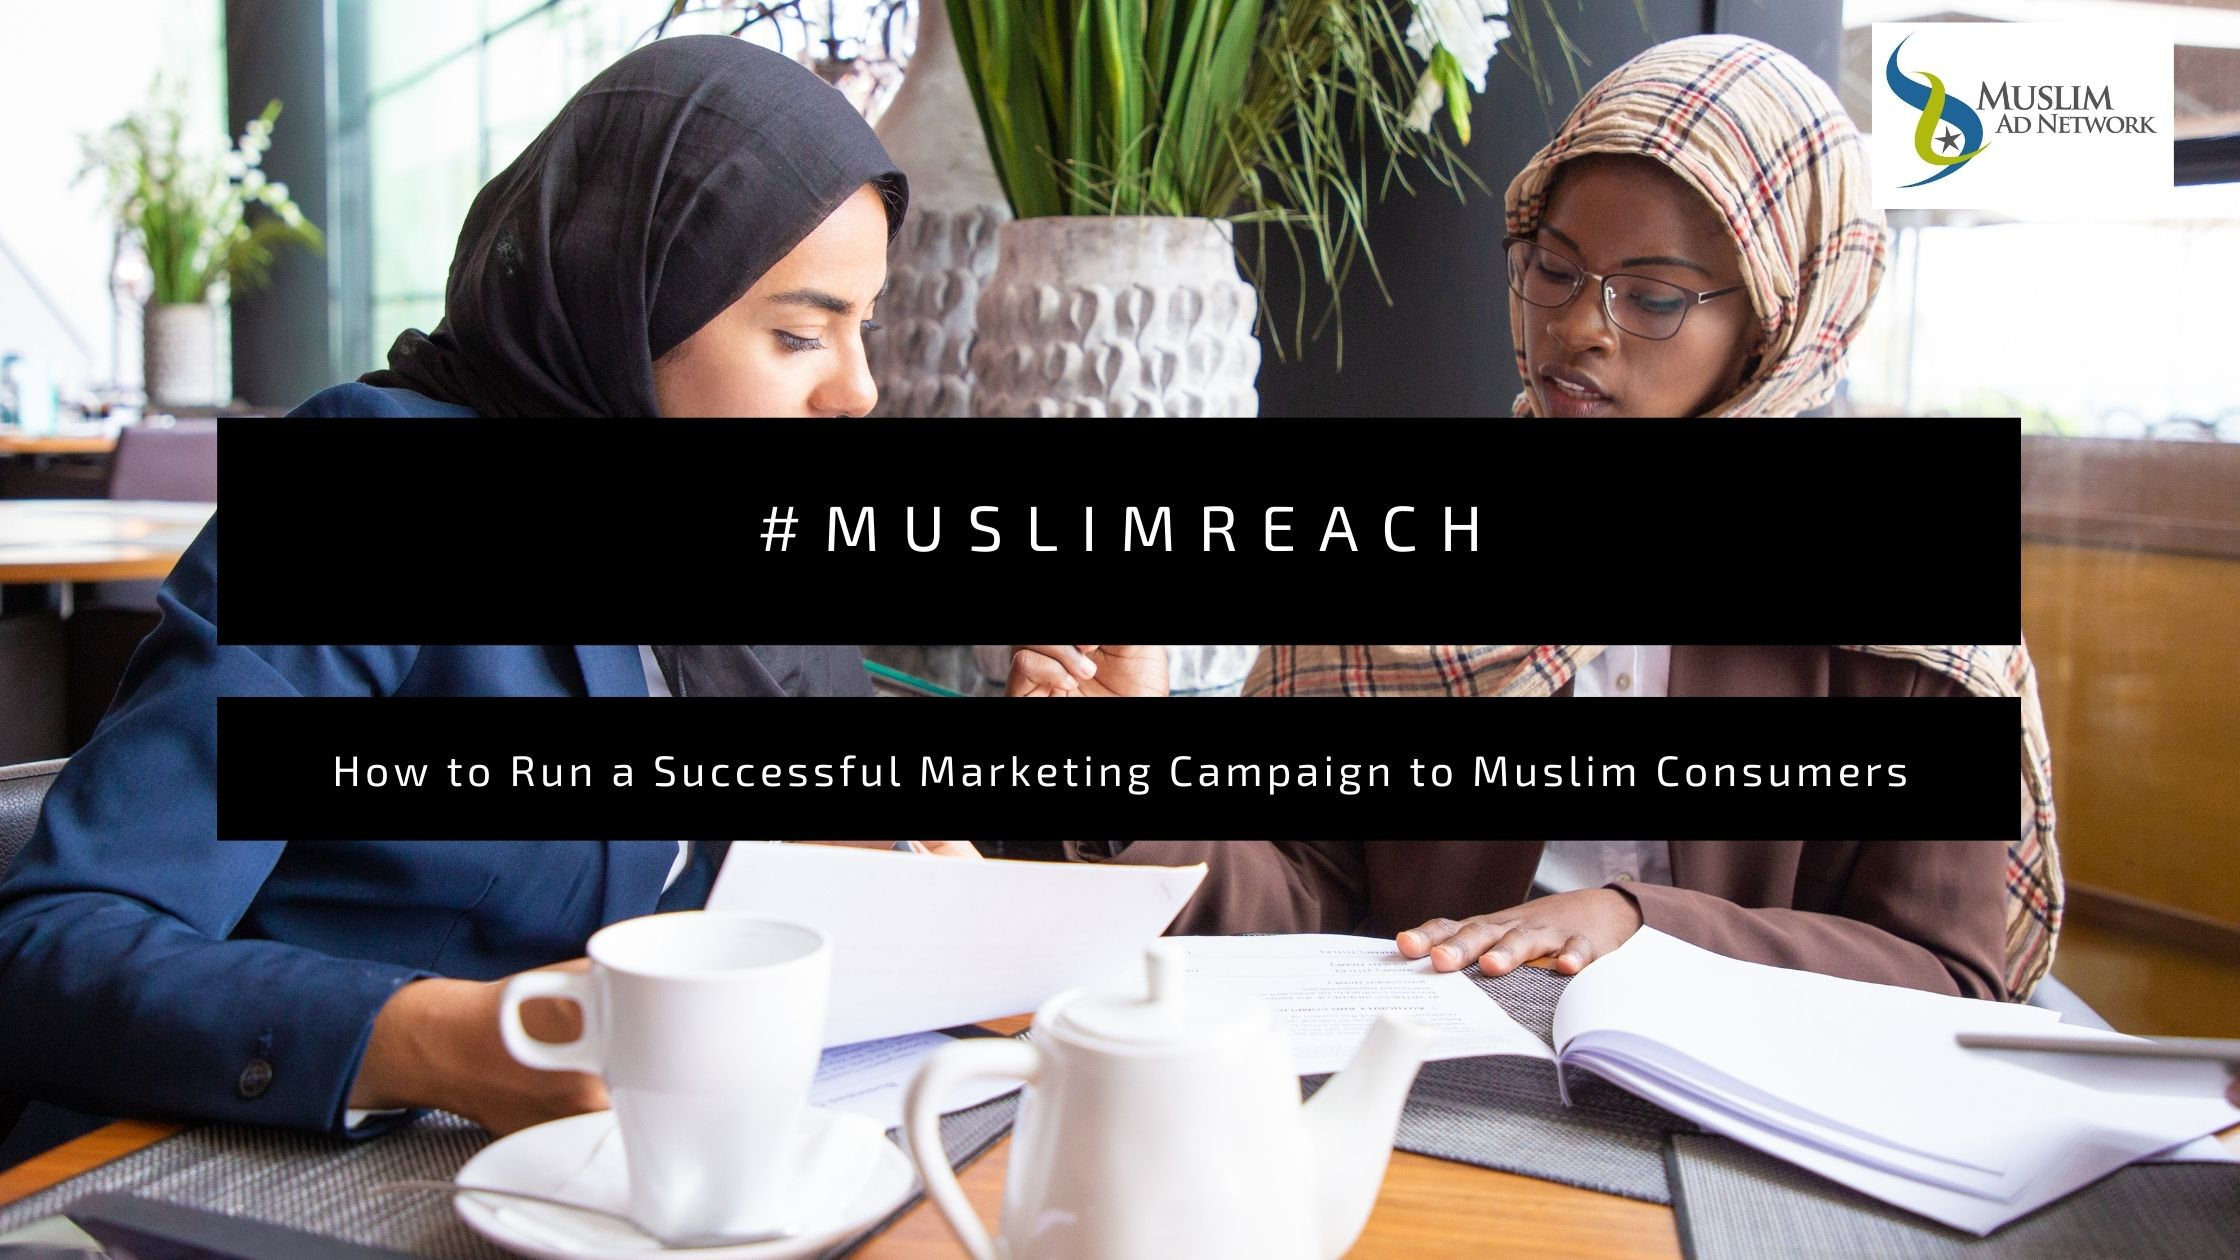 How to Run a Successful Marketing Campaign to Muslim Consumers